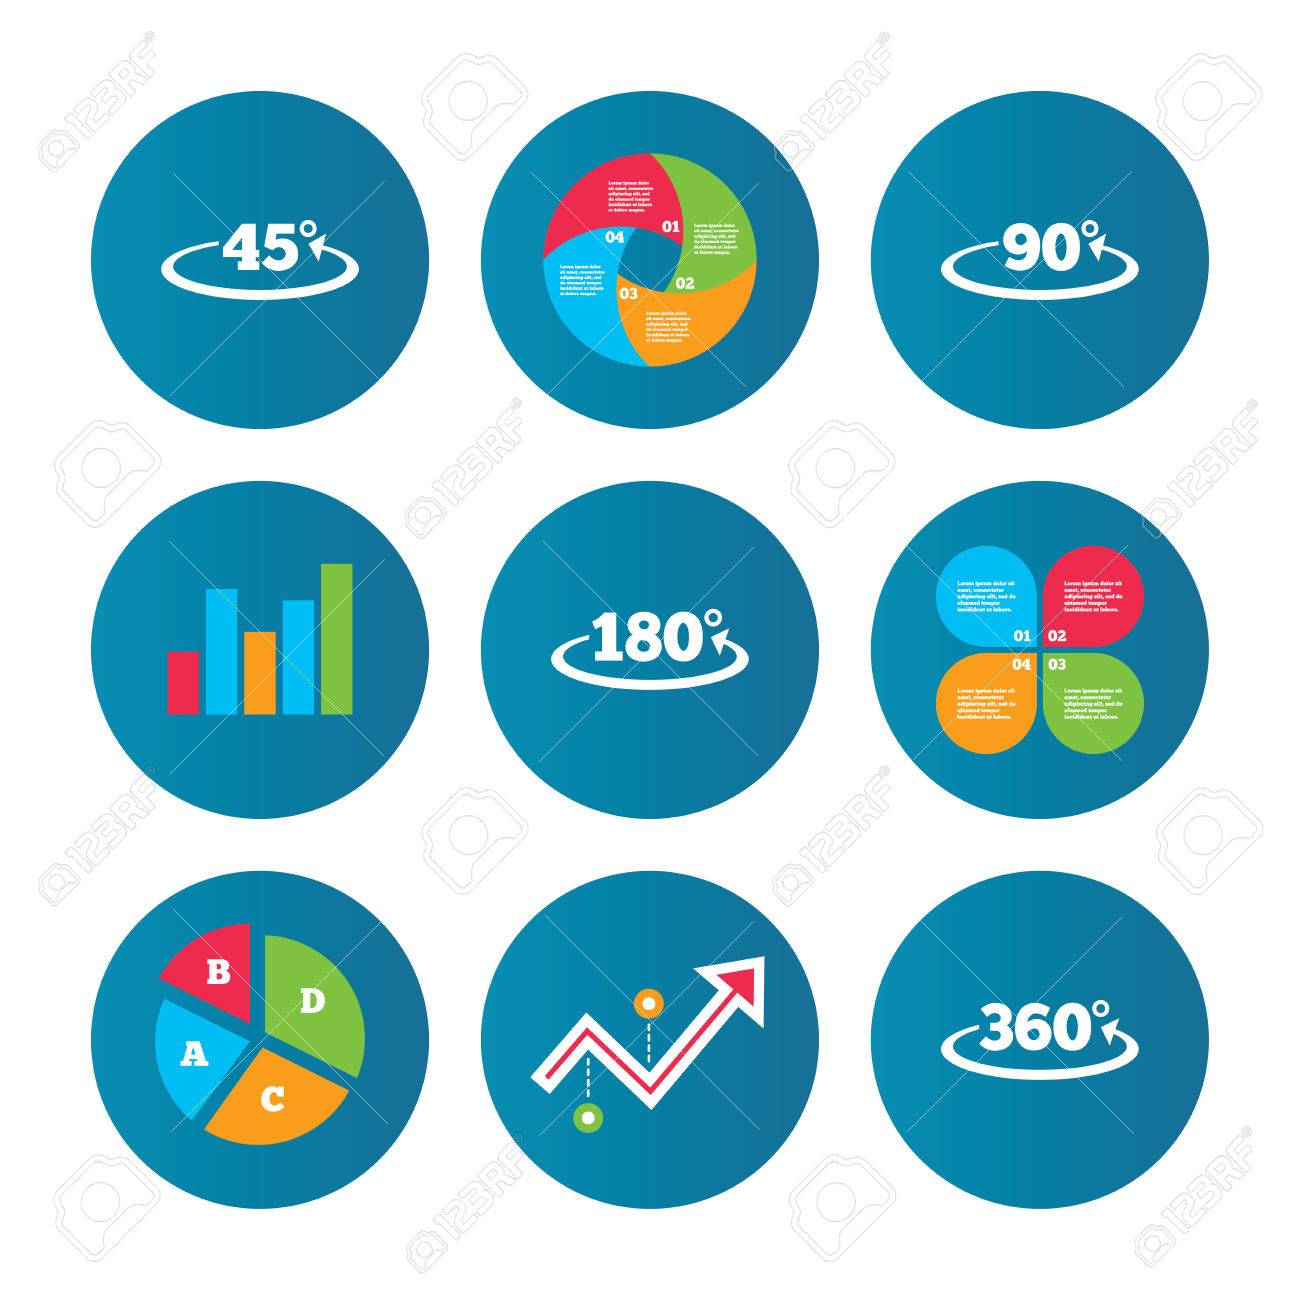 Business pie chart growth curve presentation buttons angle business pie chart growth curve presentation buttons angle 45 360 degrees icons geenschuldenfo Image collections